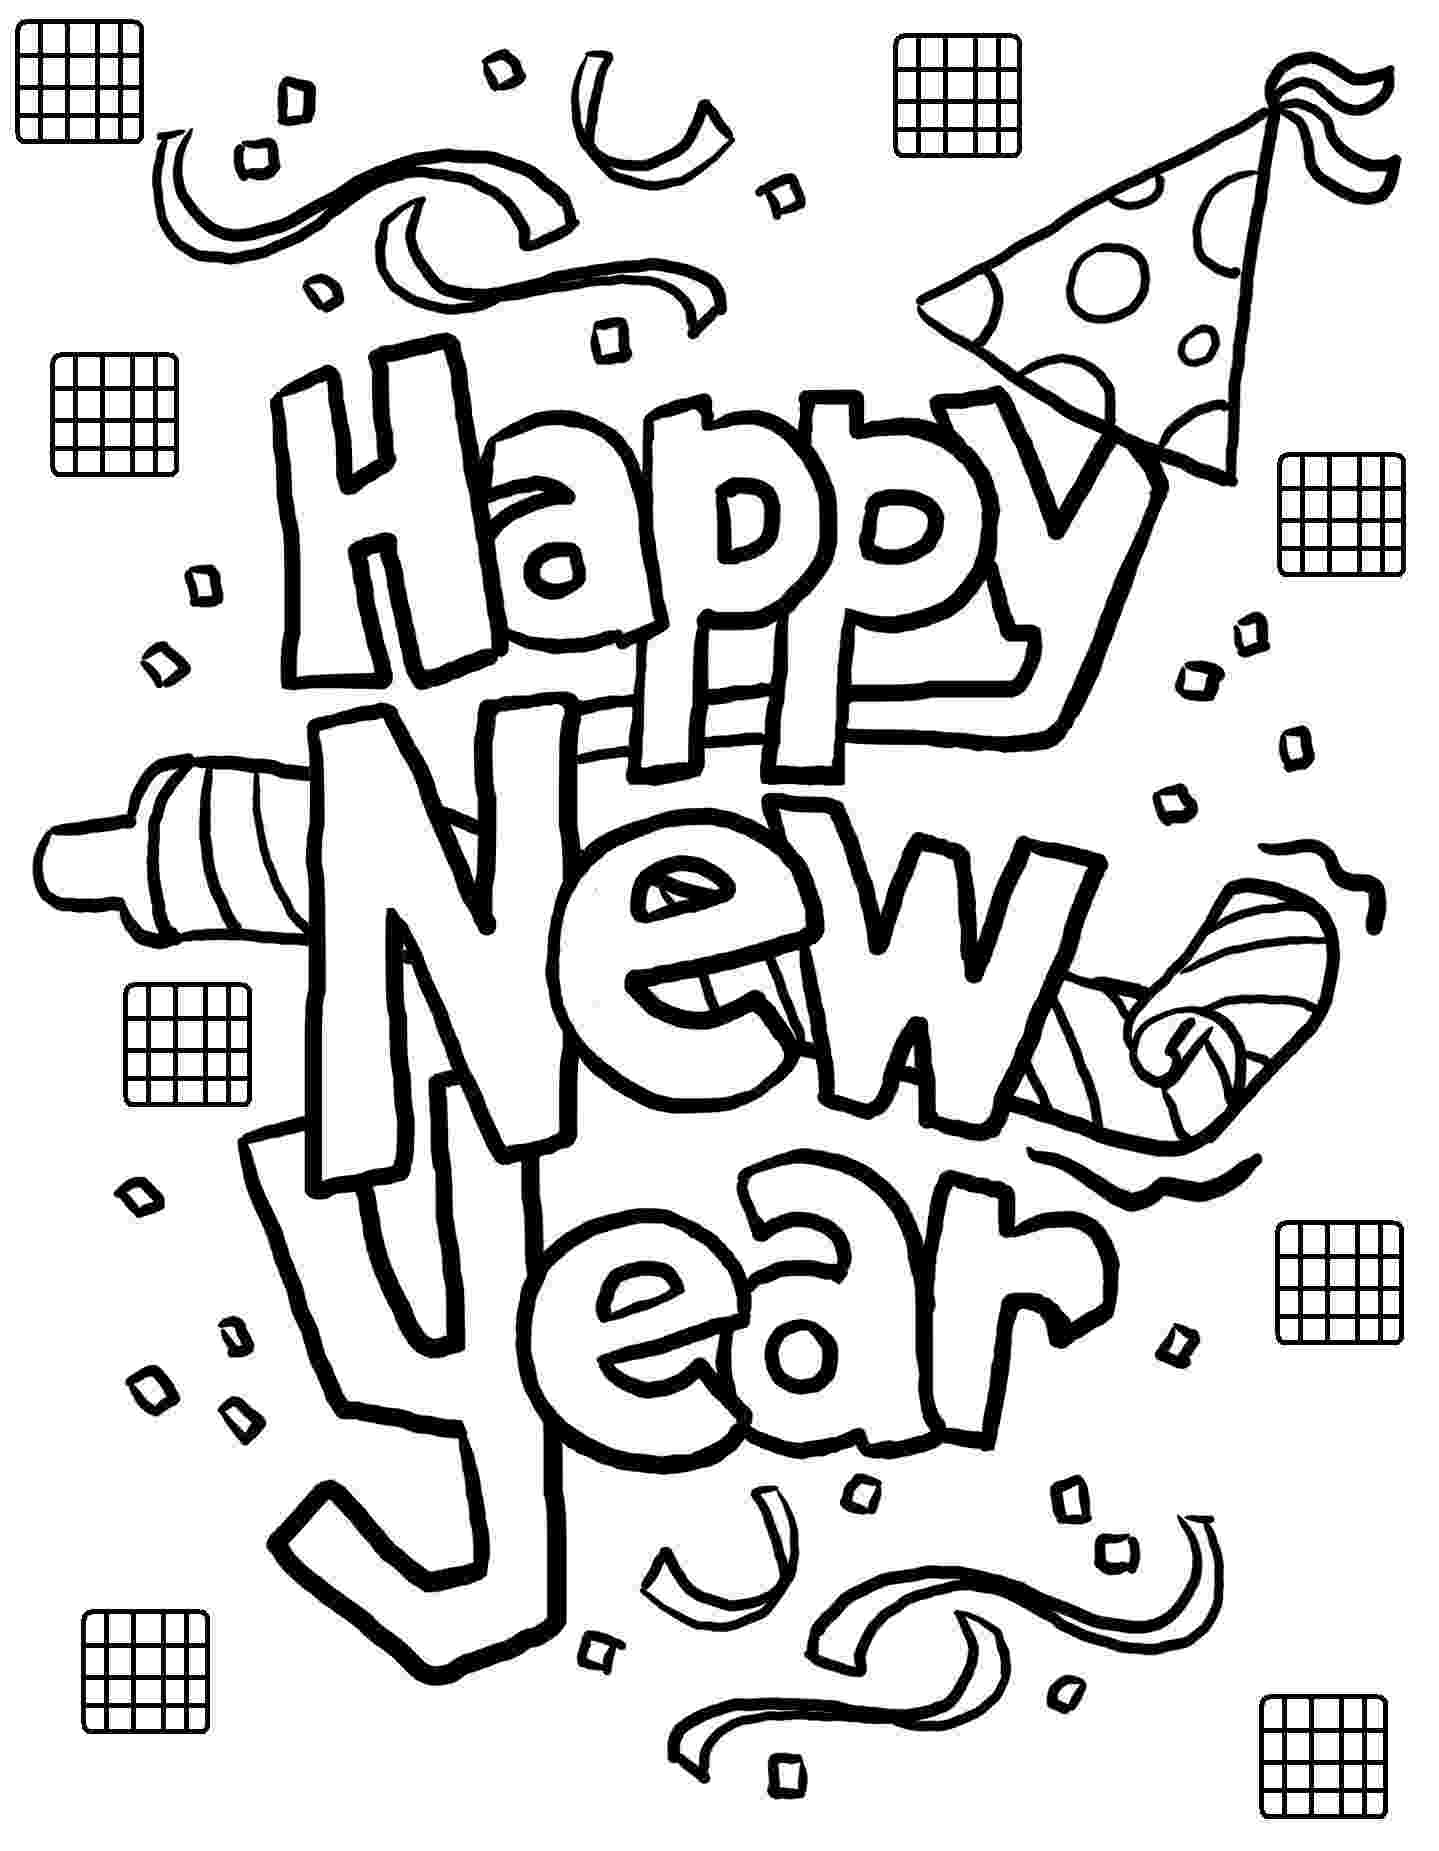 printable coloring pages for new years free printables activities for a family new years party years coloring for printable new pages